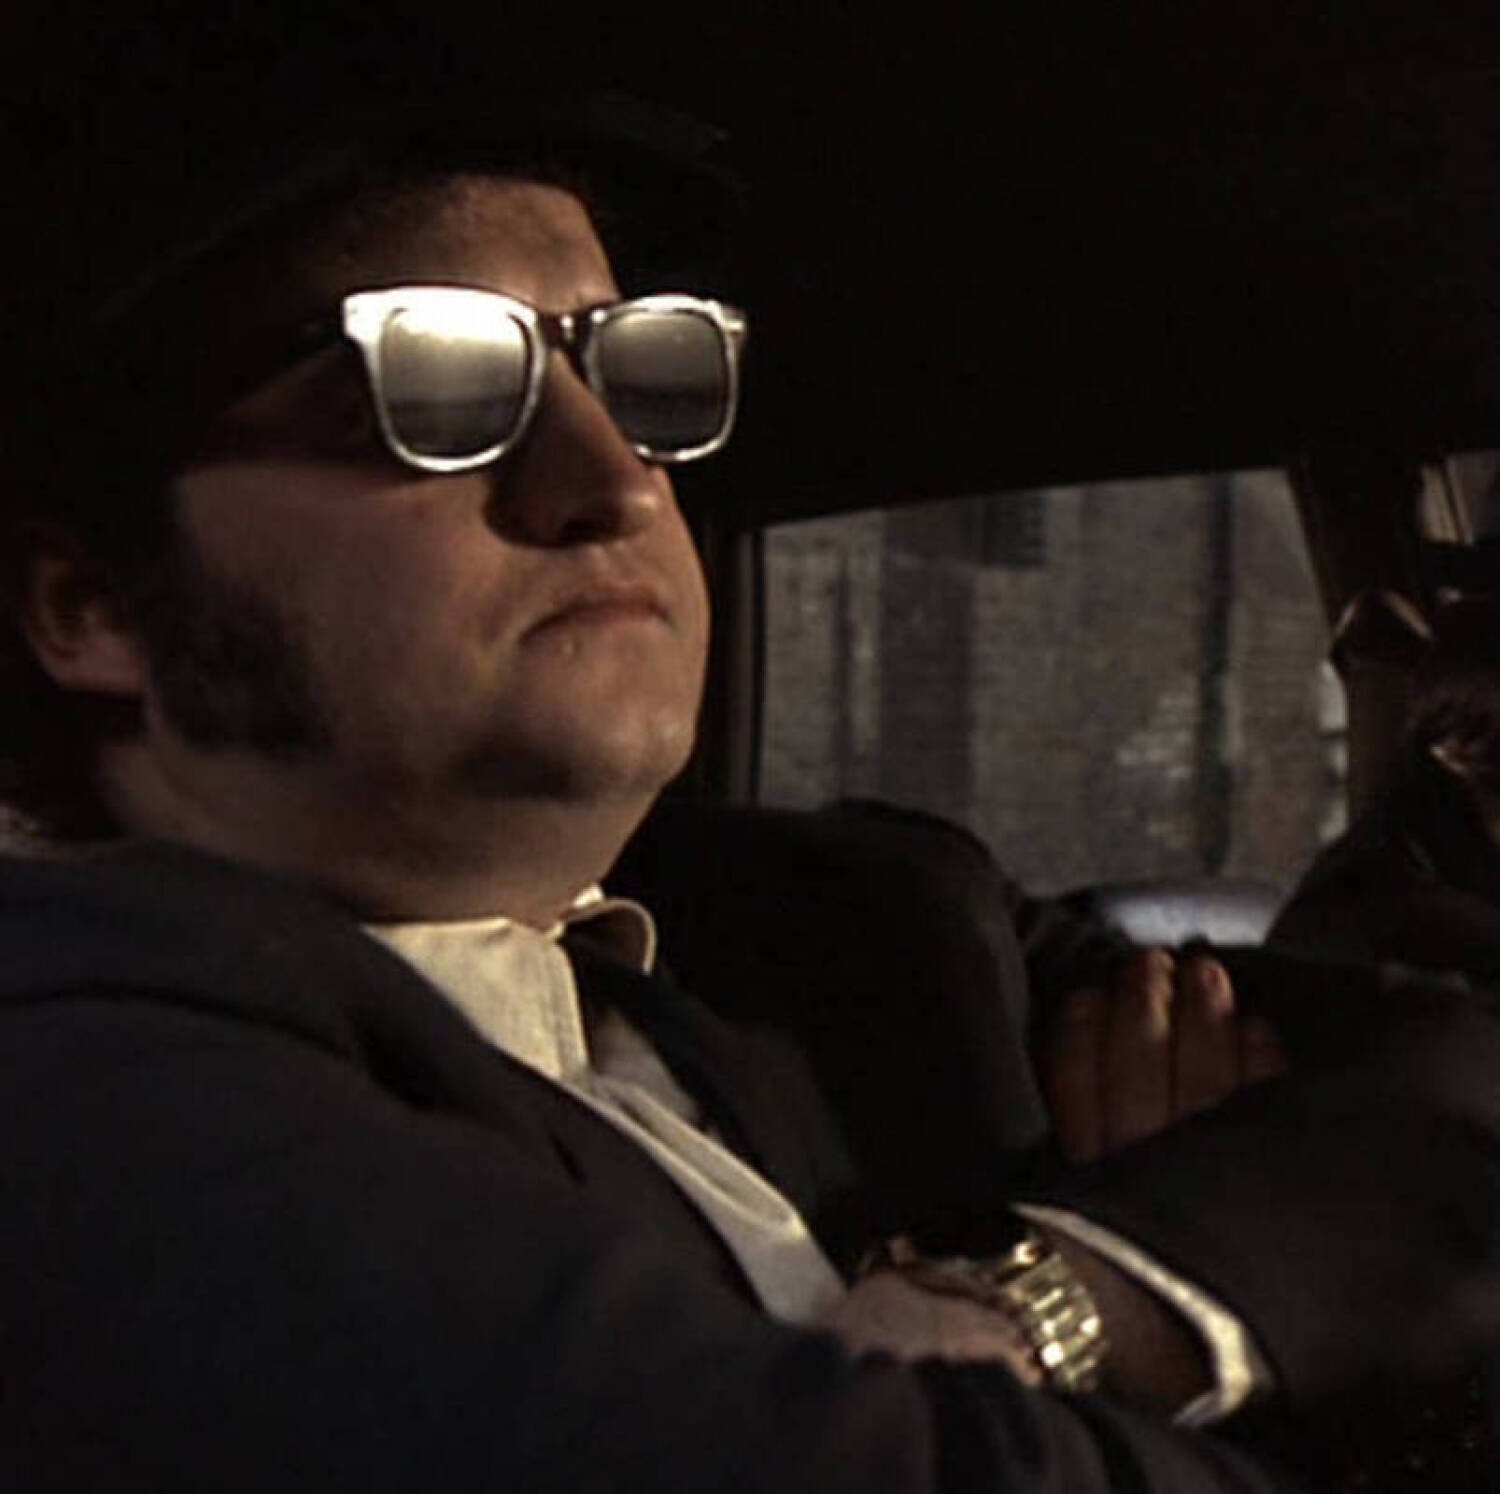 The Blues Brothers John Belushi Sunglasses Current Price